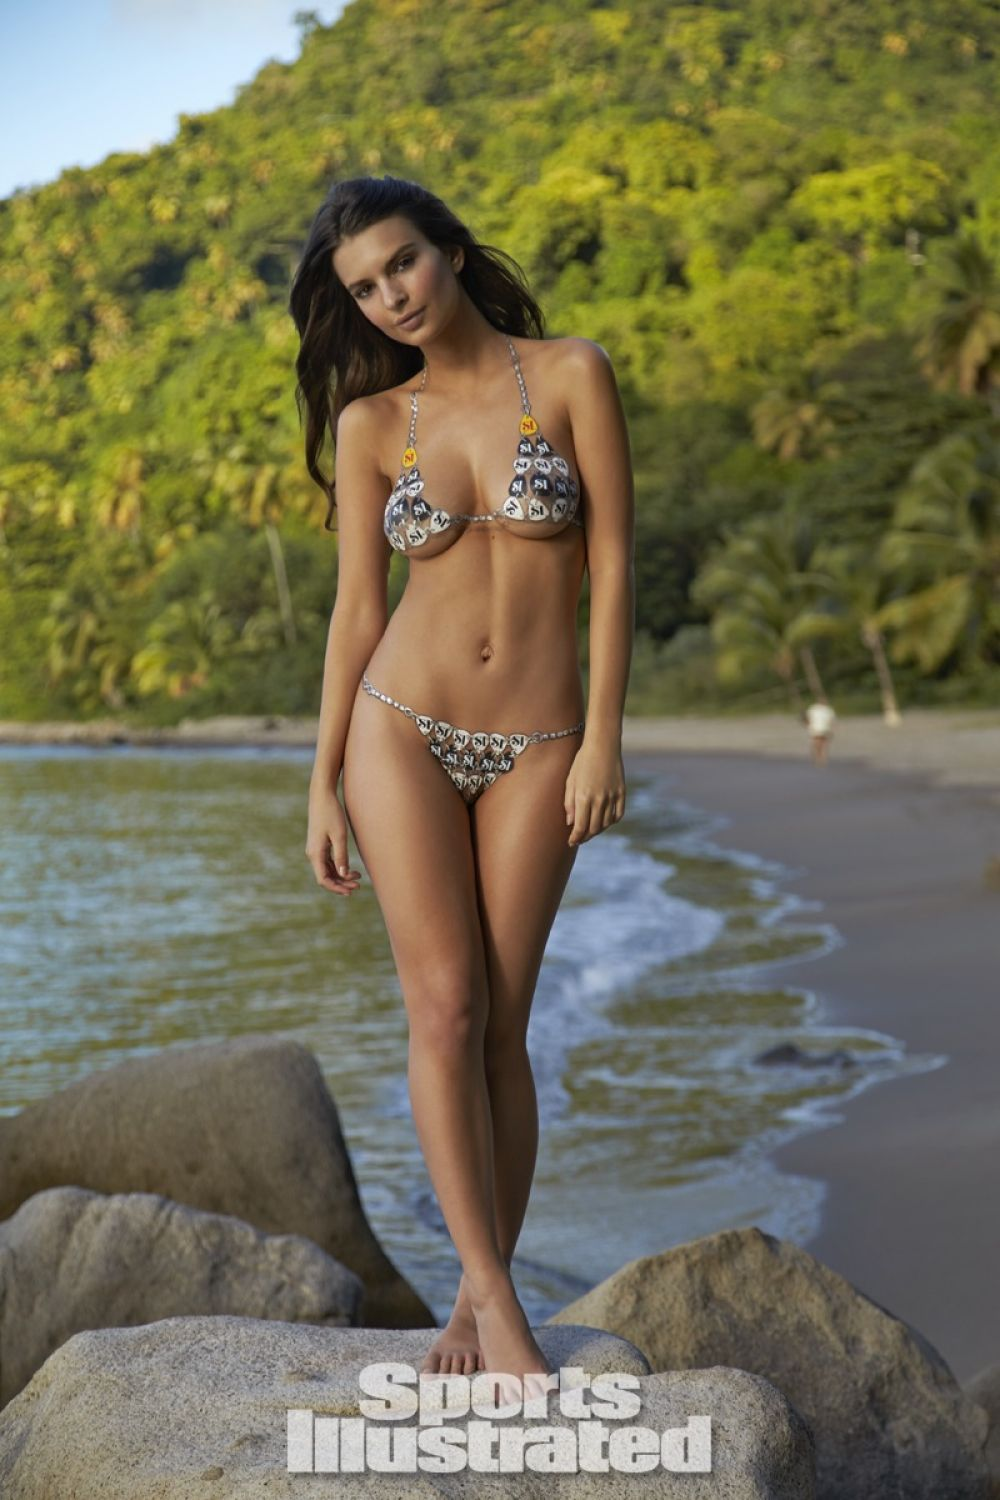 emily-ratajkowski-in-sports-illustrated-2014-swimsuit-issue_10.jpg - 165.10 KB